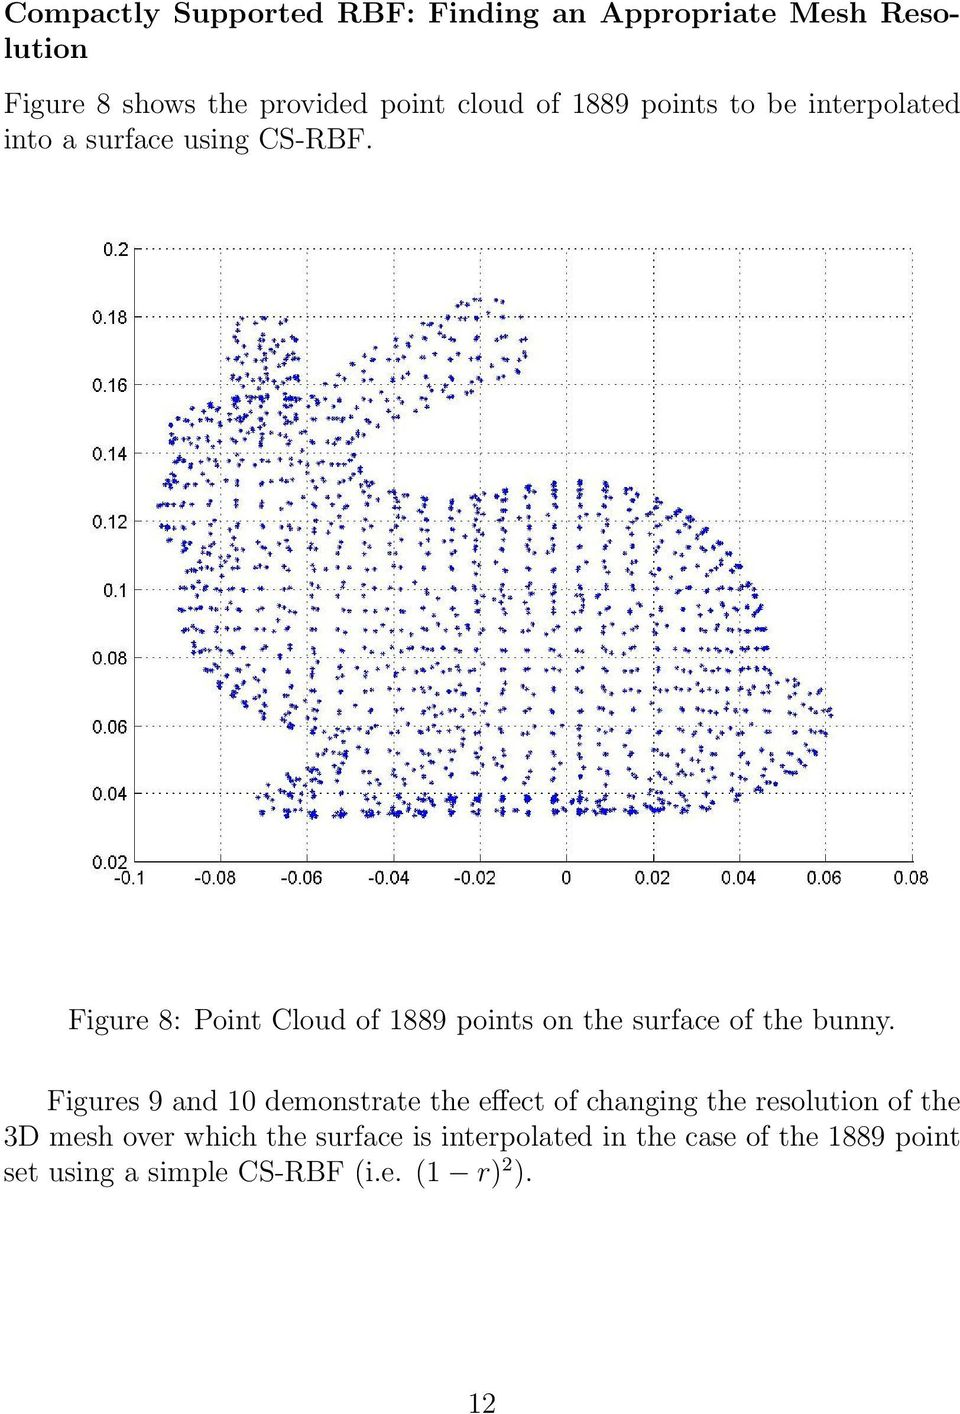 Figure 8: Point Cloud of 1889 points on the surface of the bunny.